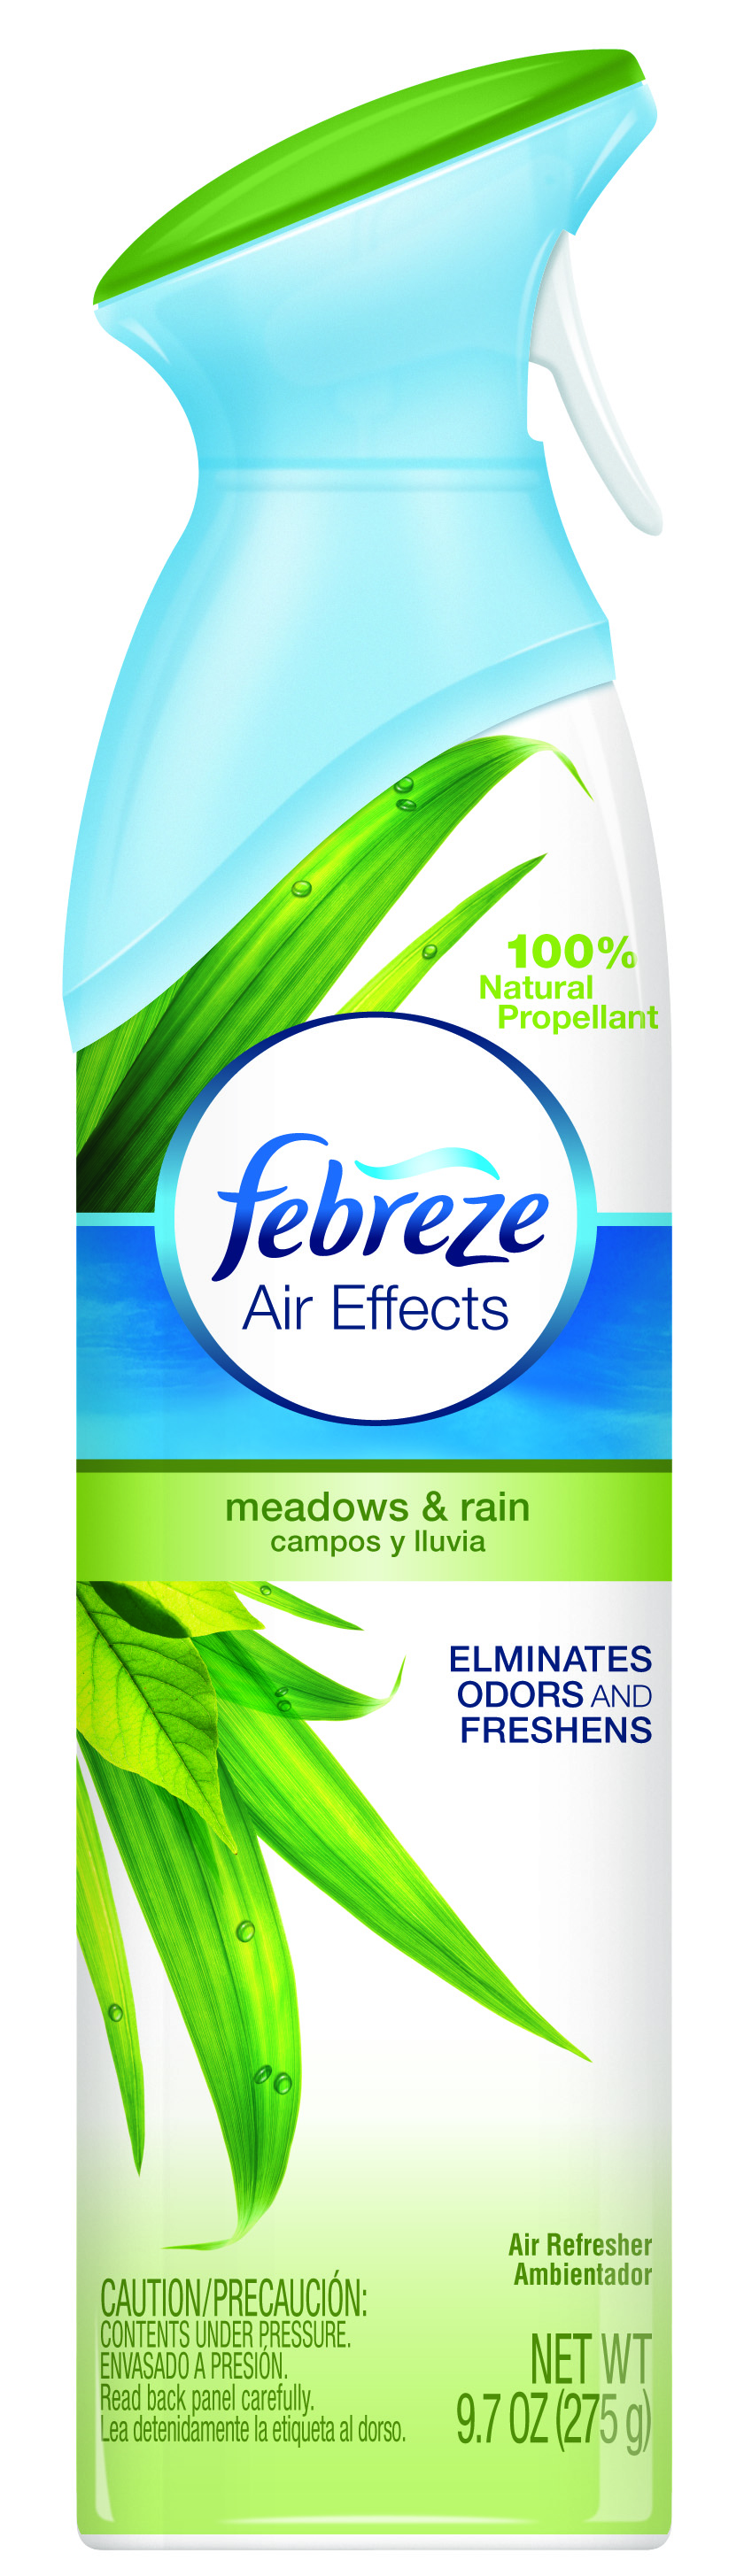 Febreze Product Image for Noseblind test